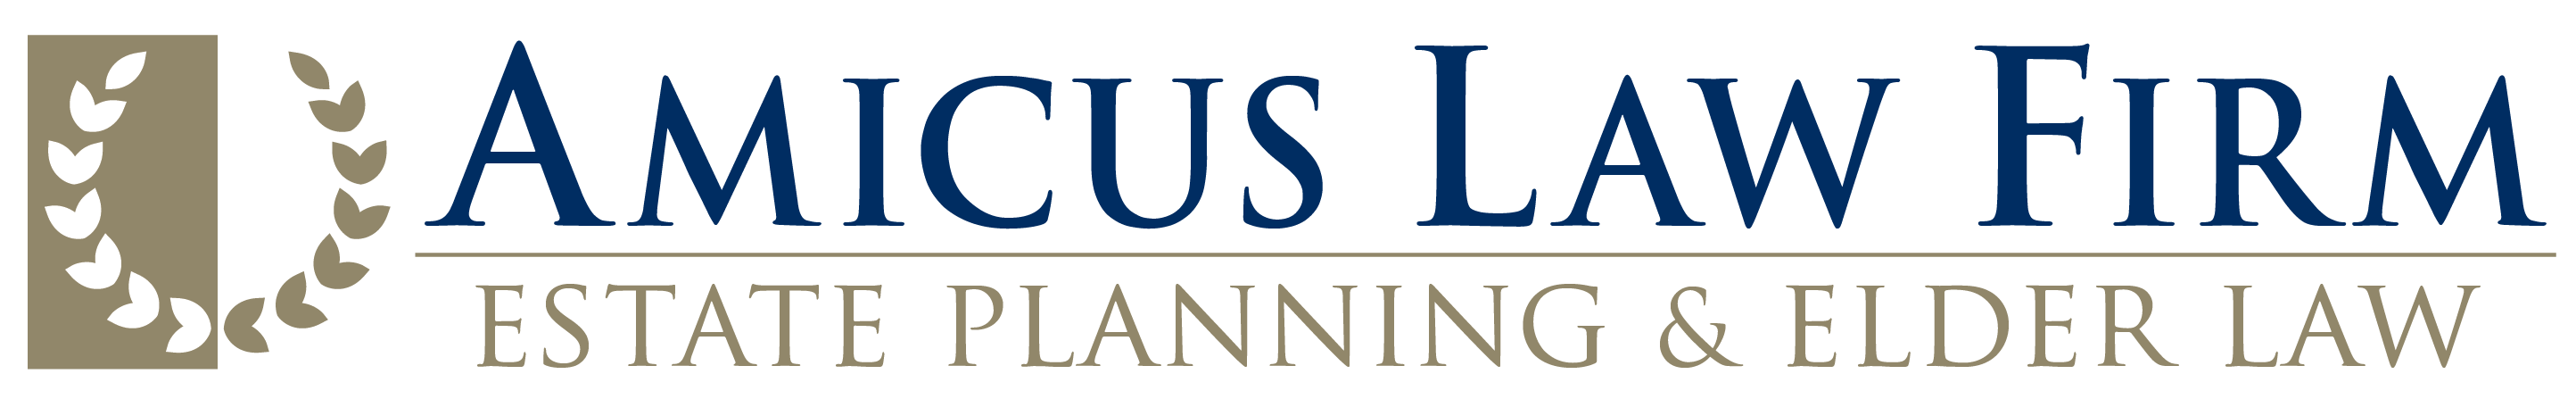 Amicus Law Firm is Helping Families to Protect Their Future With Estate Planning Services in Logan, UT